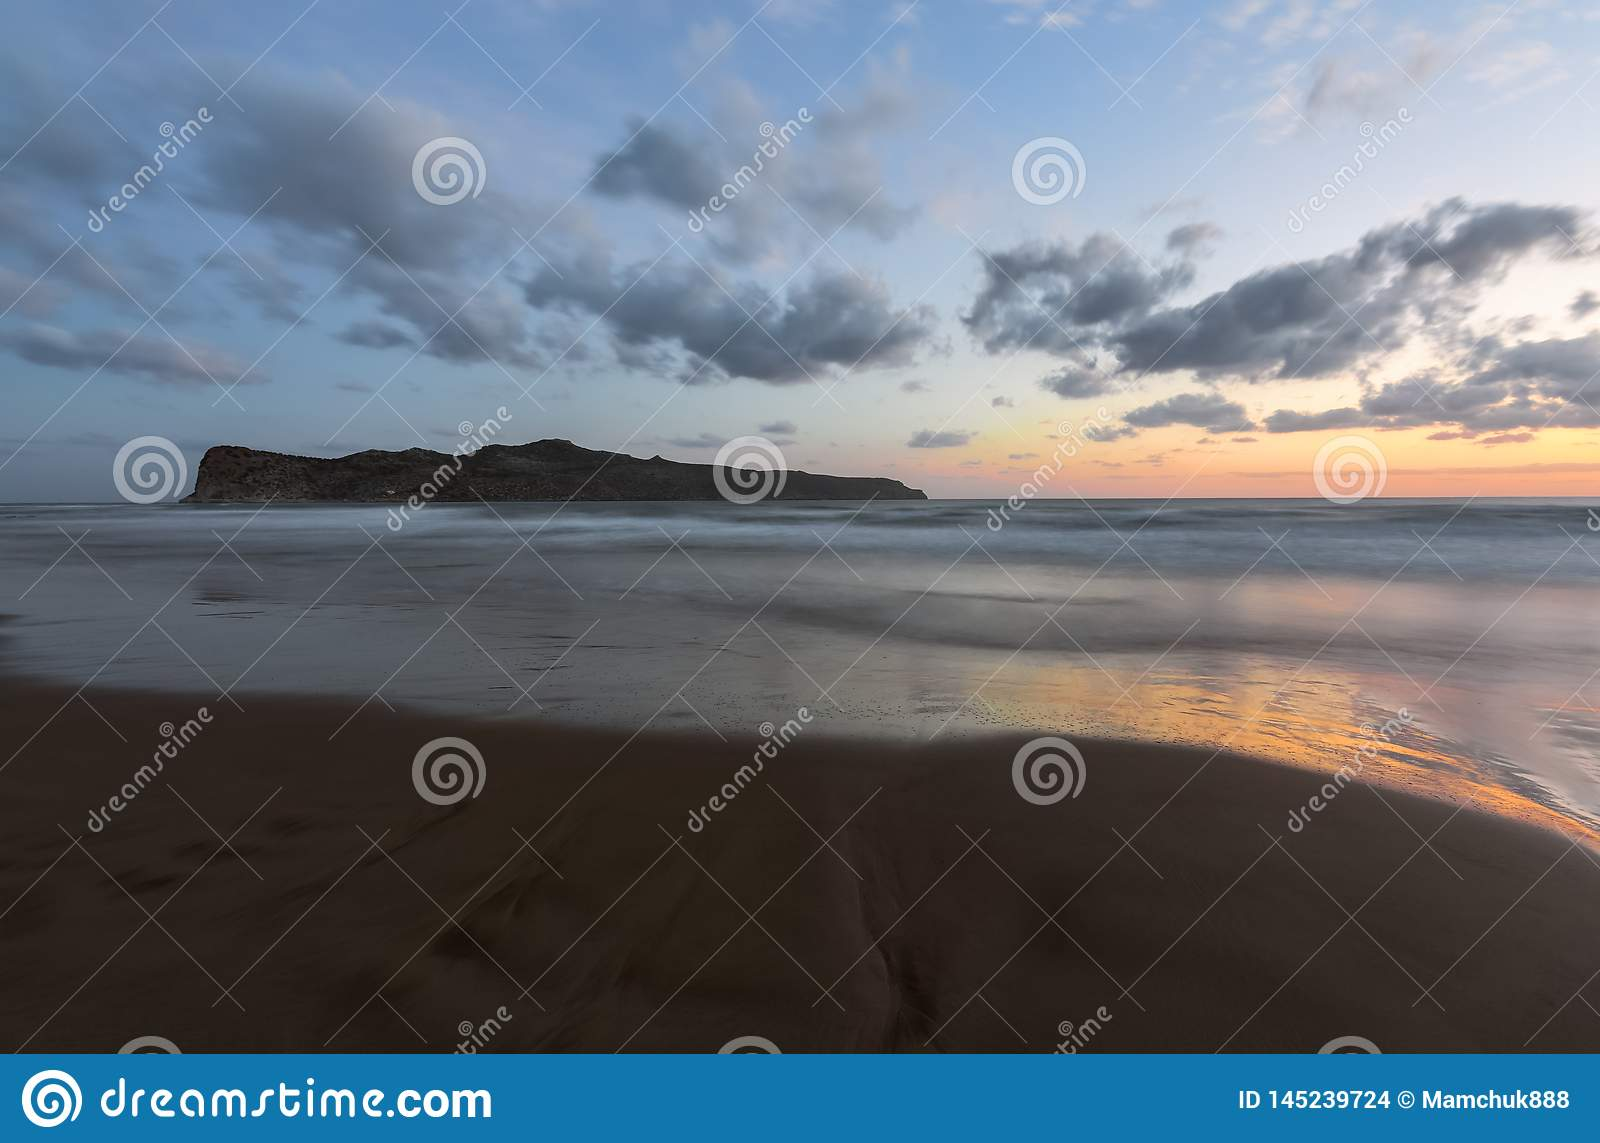 From the coast with wet sand, sea with waves, mountains there is a fantastic view of sunset sky that lights up with unbelievable.